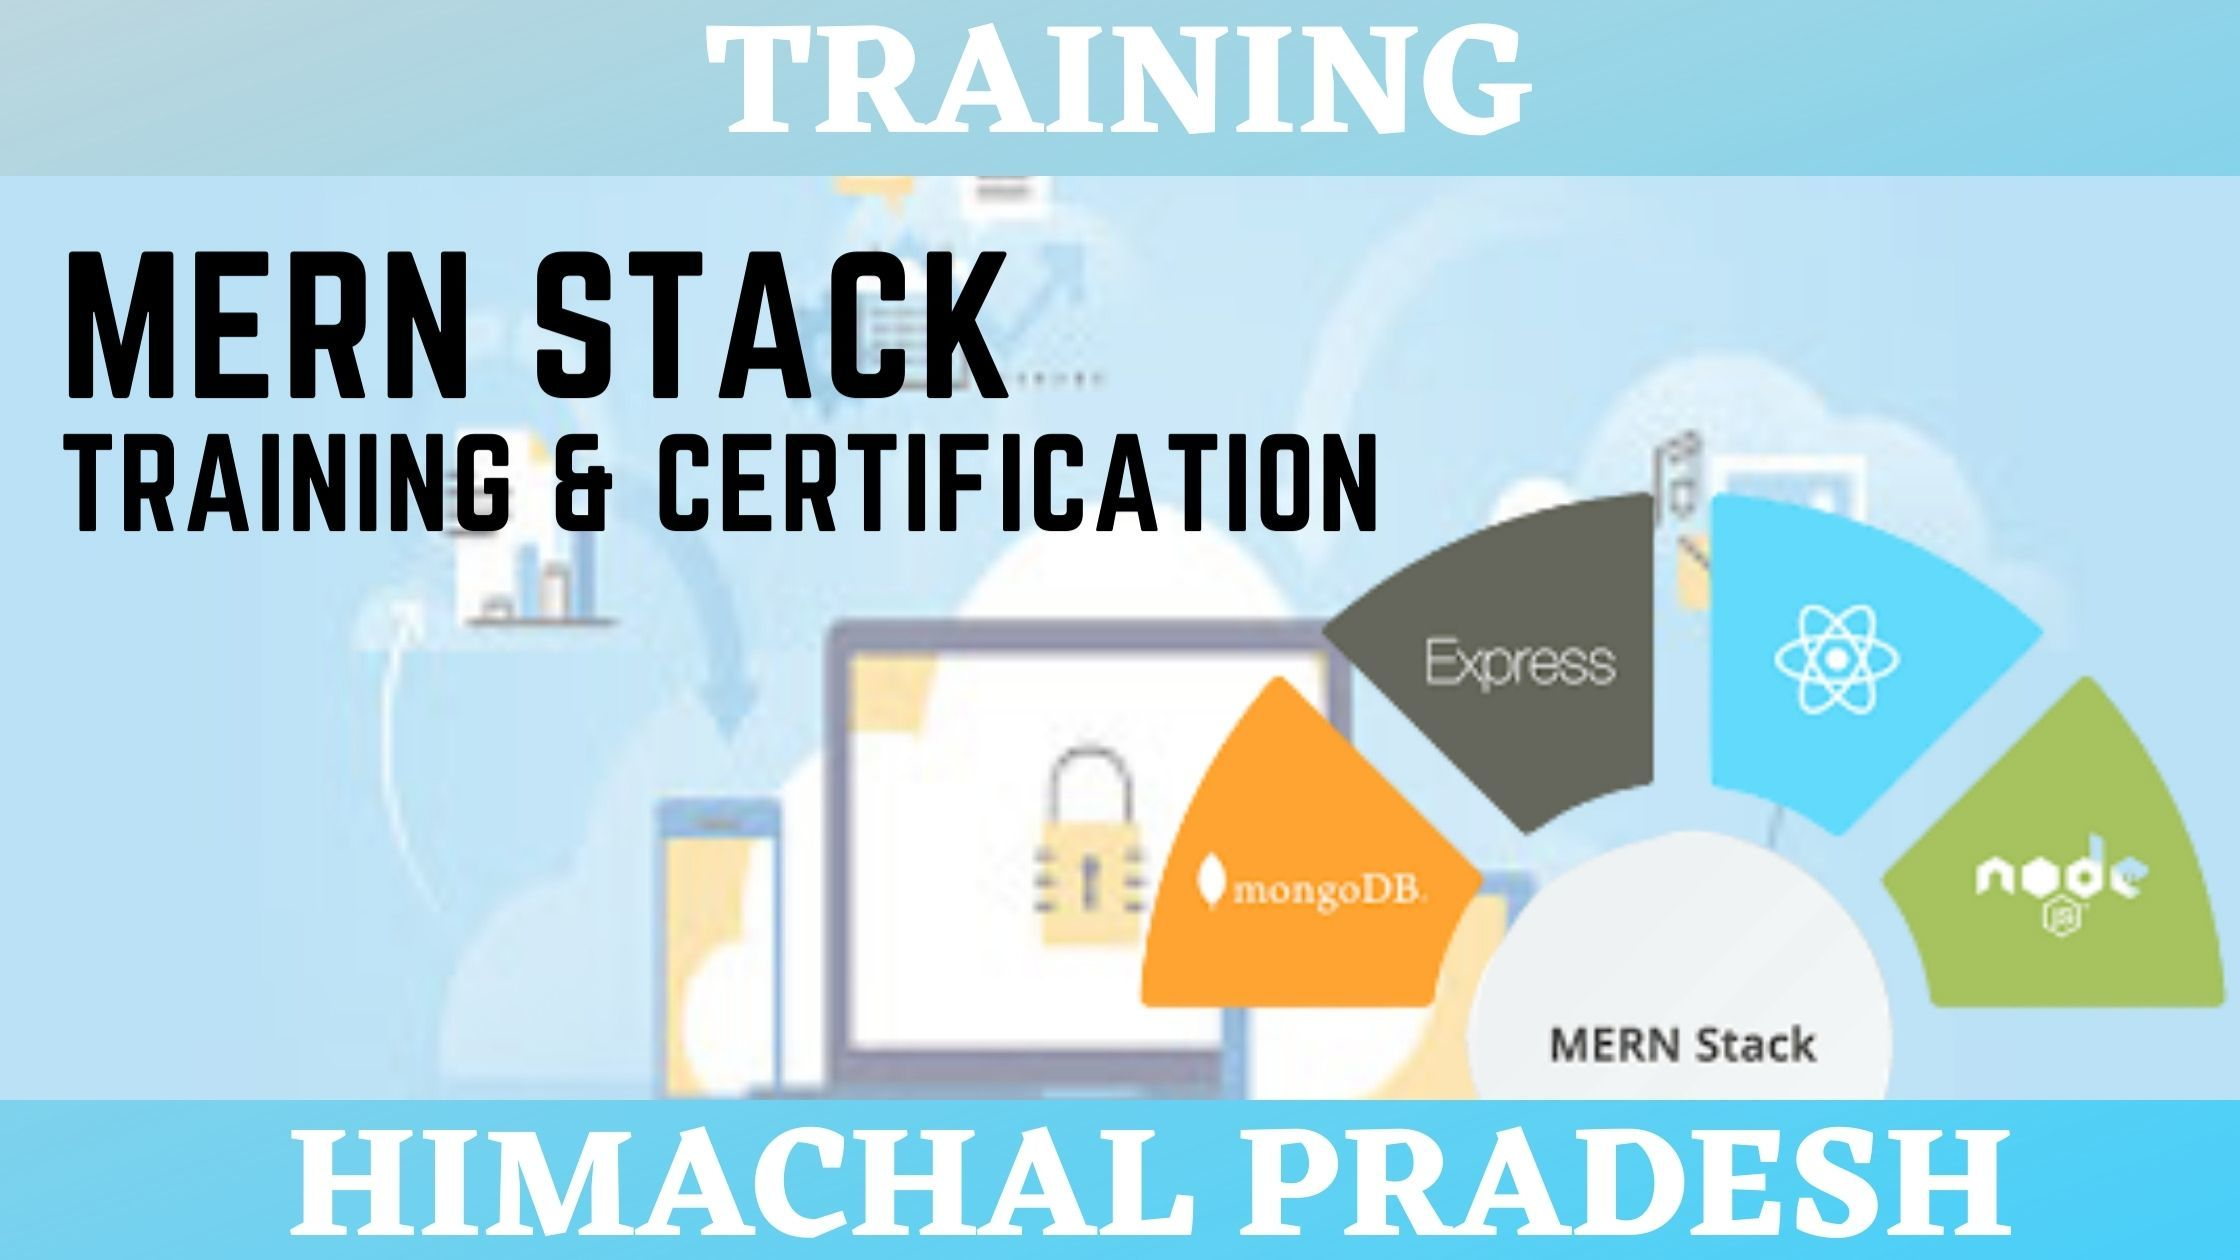 mern_stack_training_in_himachal_pradesh -background.jpeg